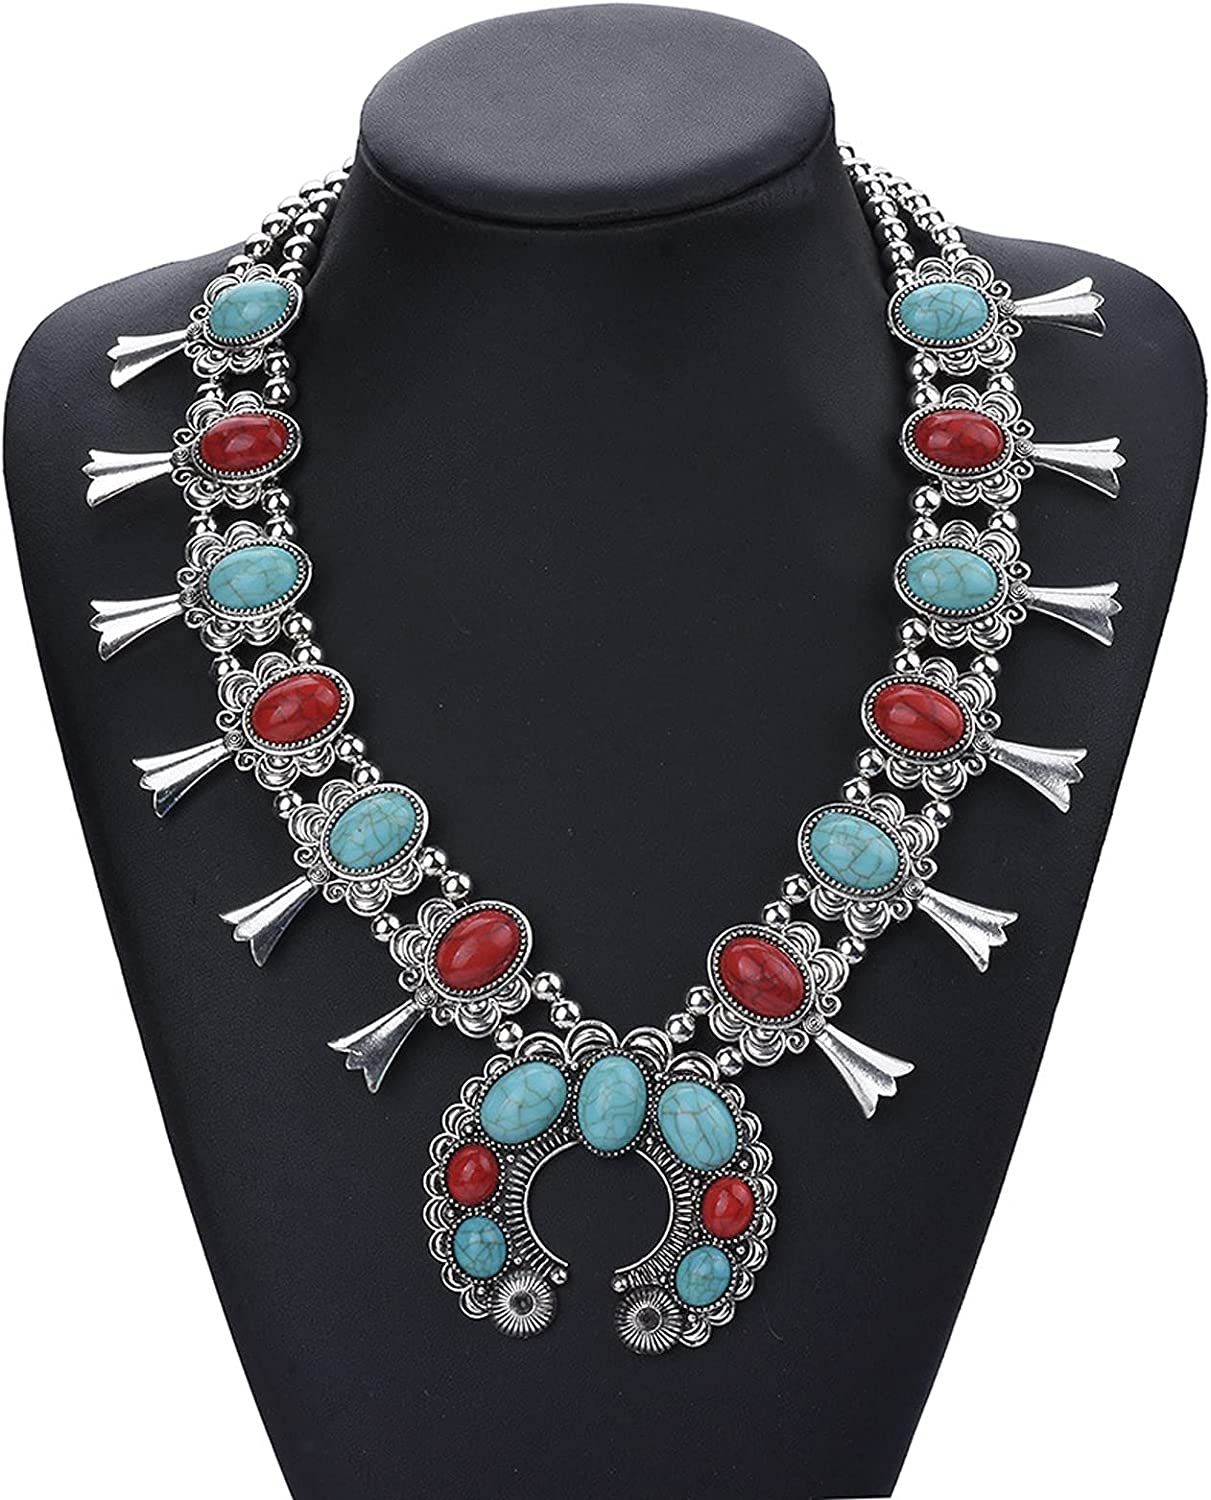 WANZPITS Vintage Bohemian Turquoise Pendant Necklace for Women Fashion Exaggerated Statement Chunky Collar Necklace Creative Costume Necklace Jewelry Birthday Gift,1